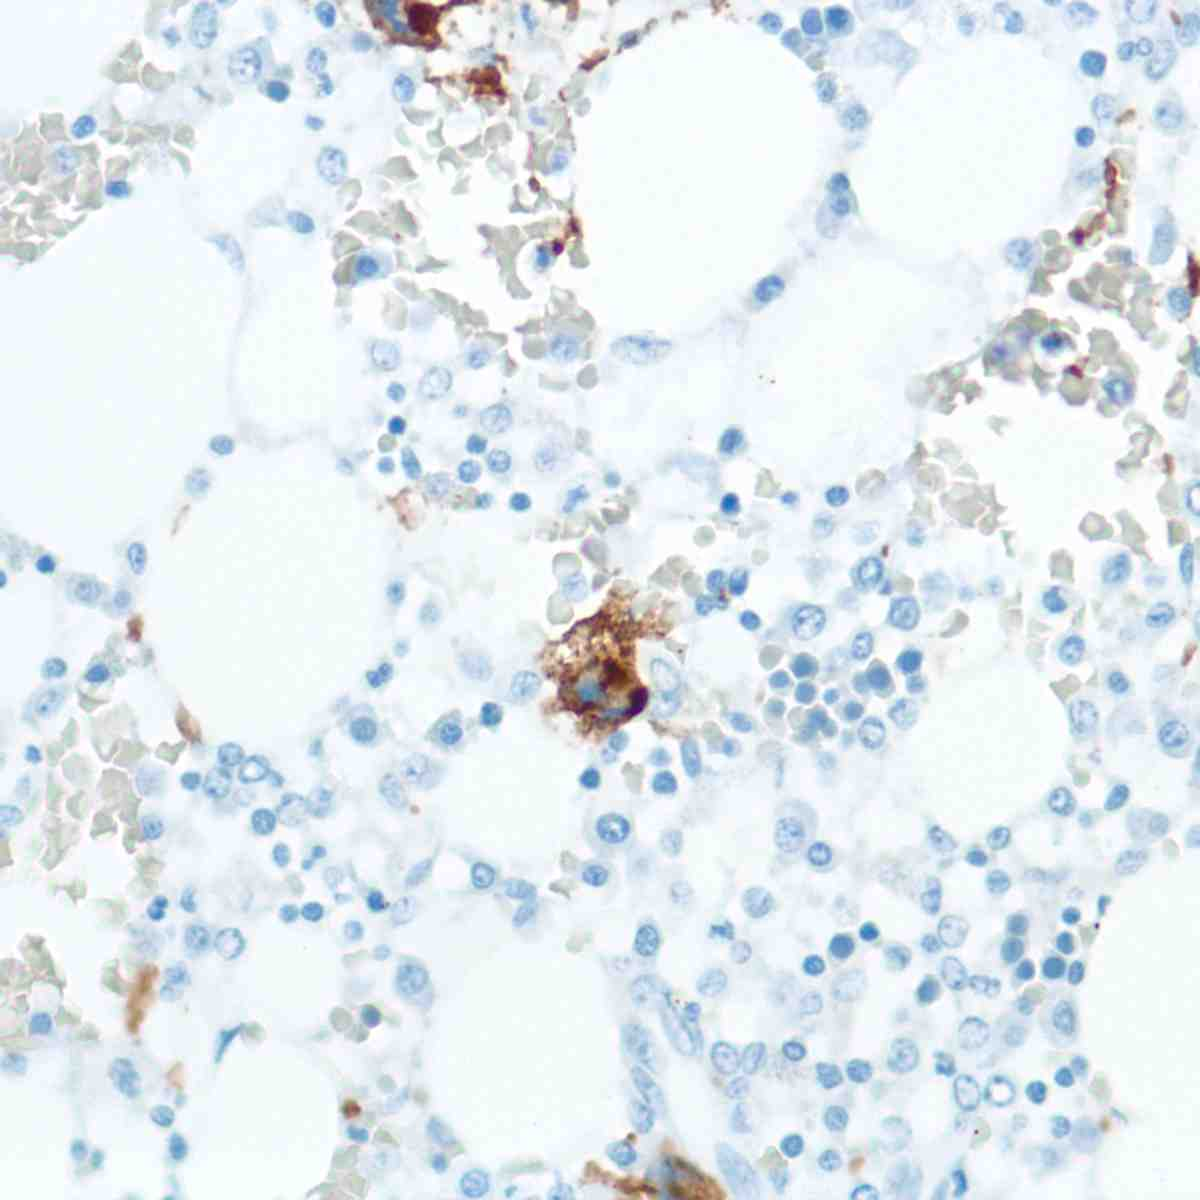 Human Bone Marrow stained with anti-CD42b antibody